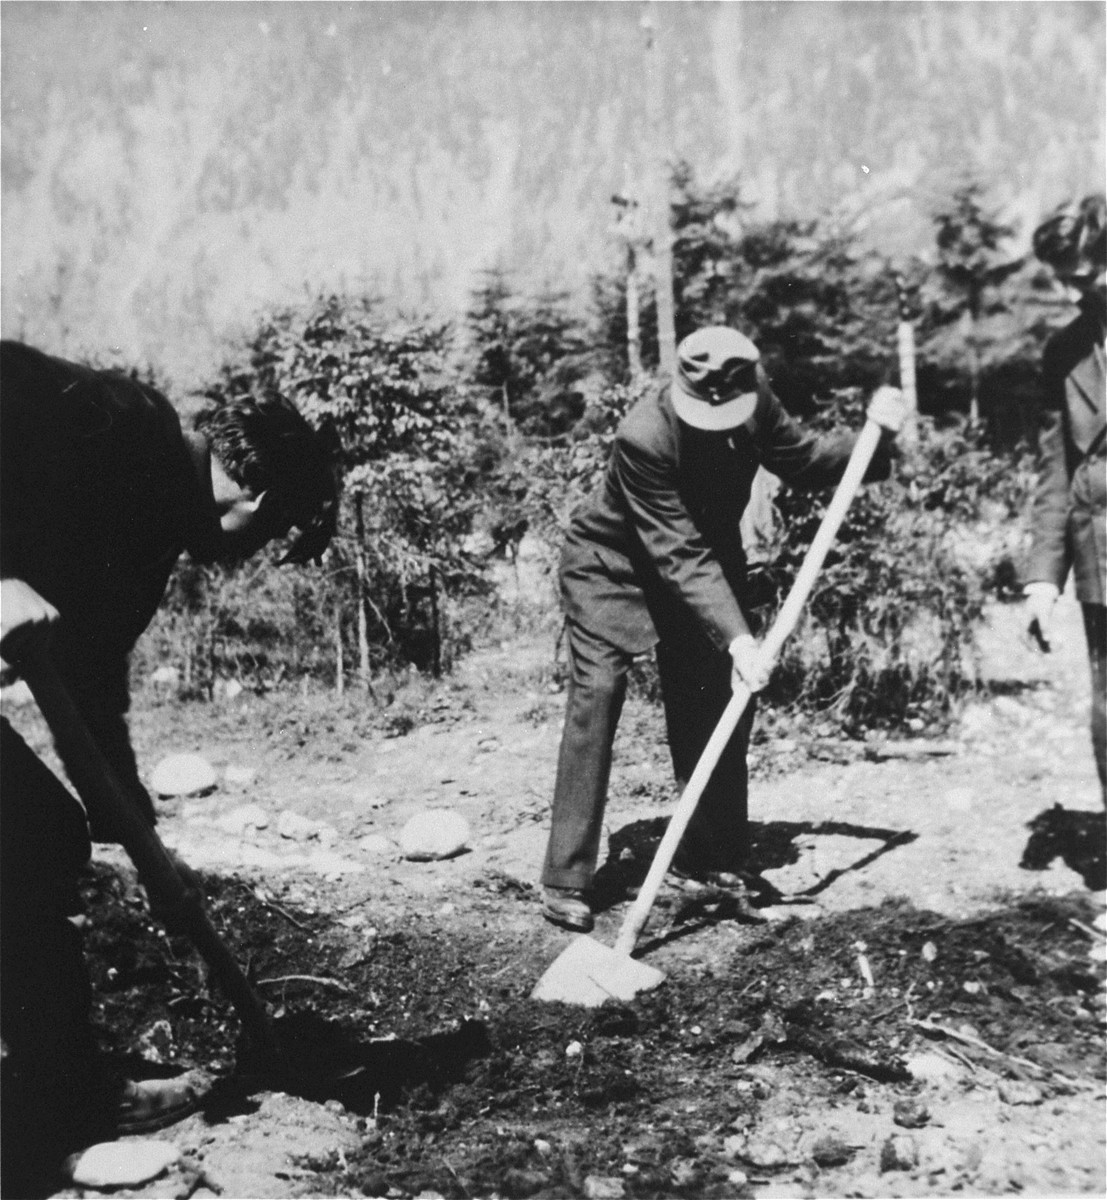 Austrian civilians exhume a mass grave in the Ebensee concentration camp.